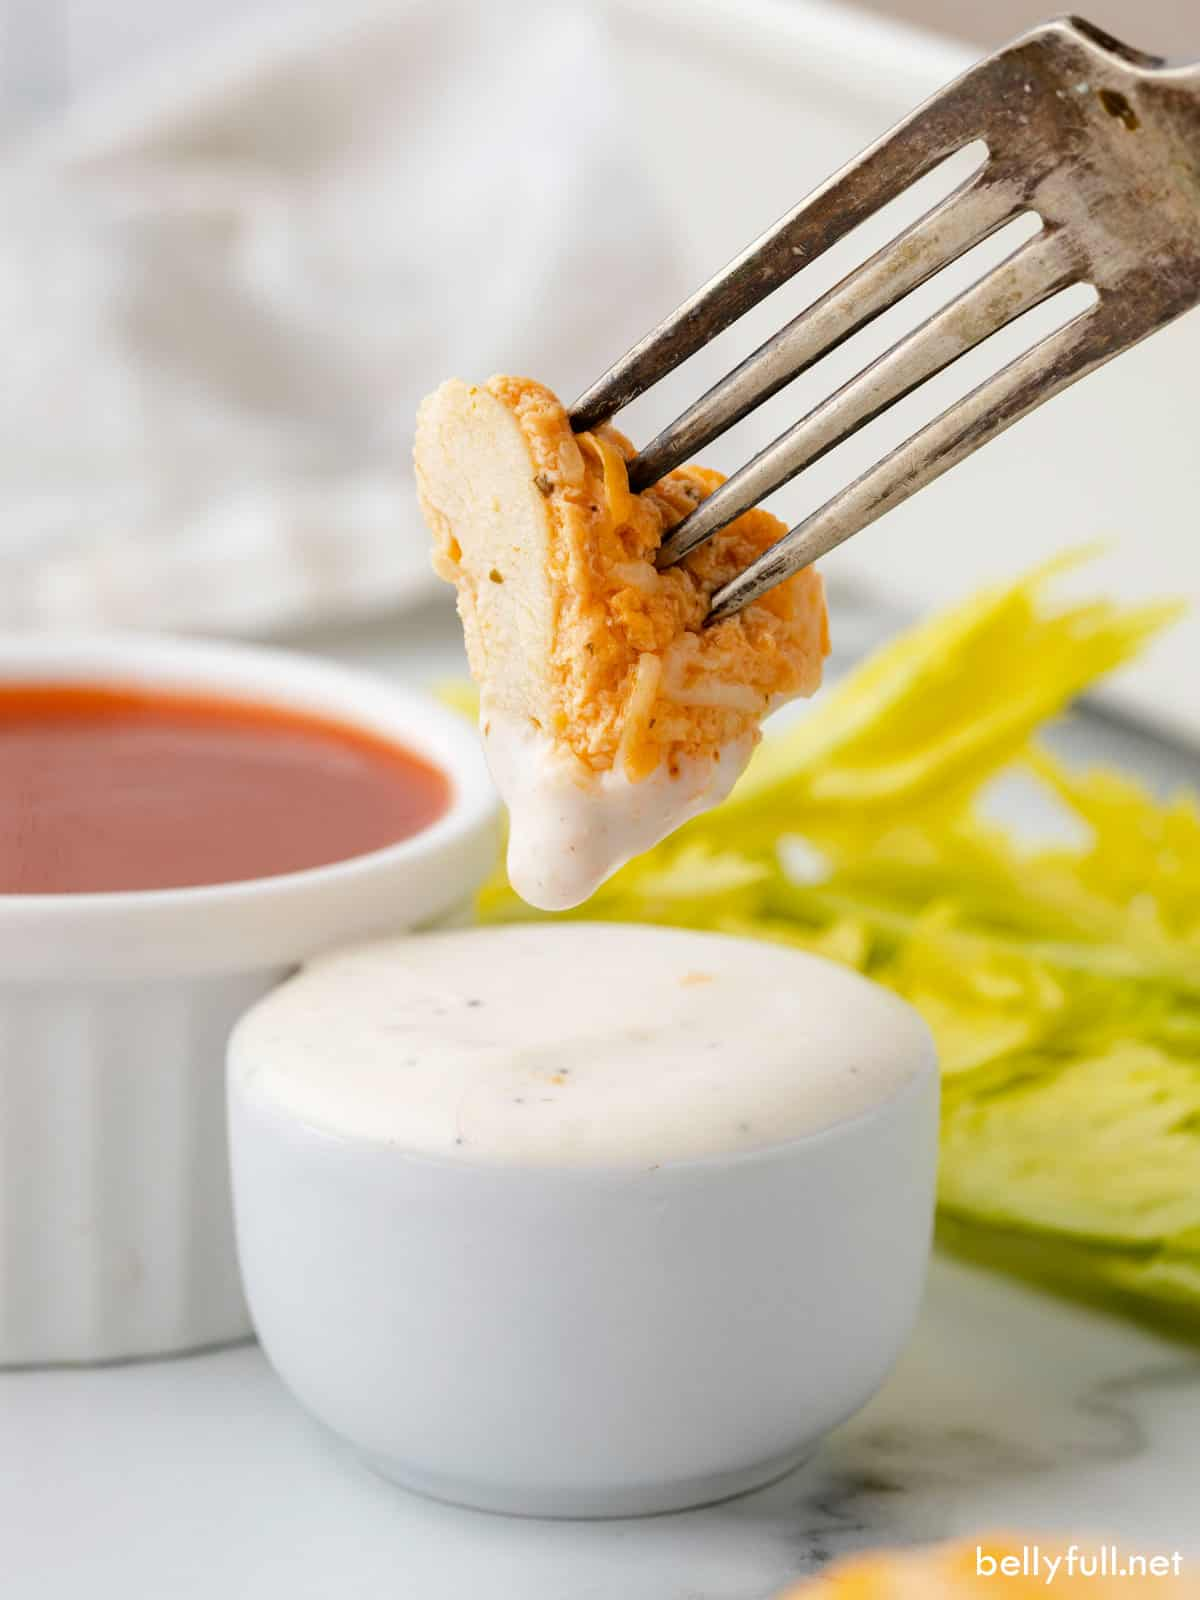 A piece of buffalo chicken breast on a fork dipped in ranch dressing